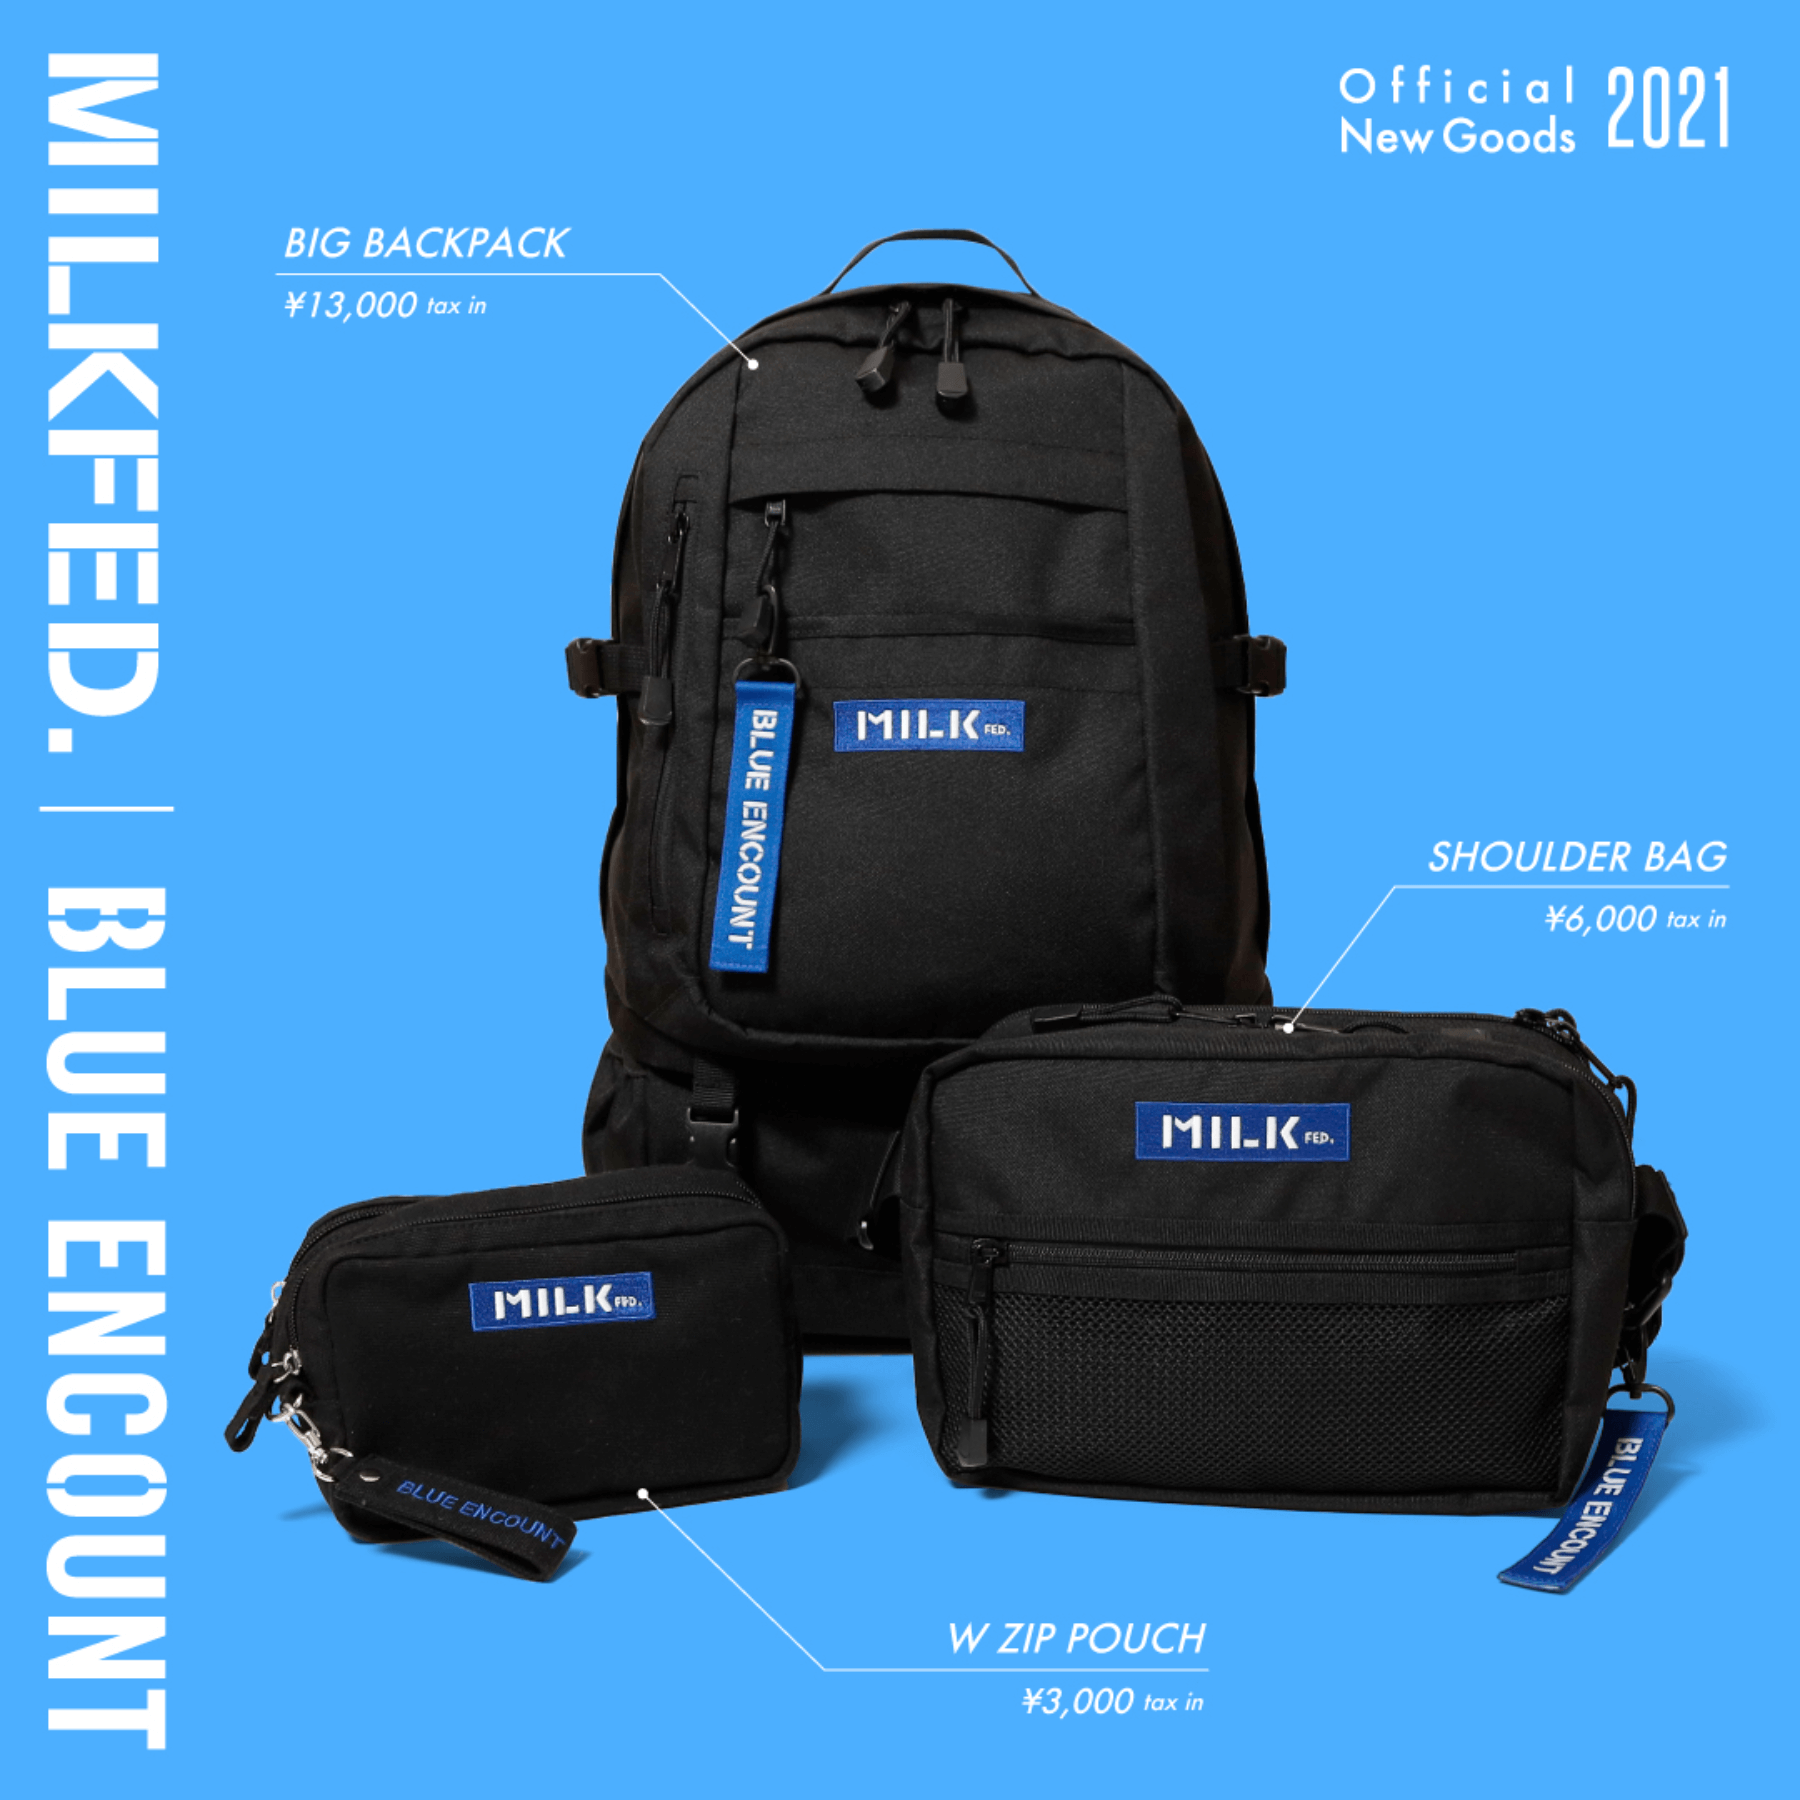 Official New Goods 2021